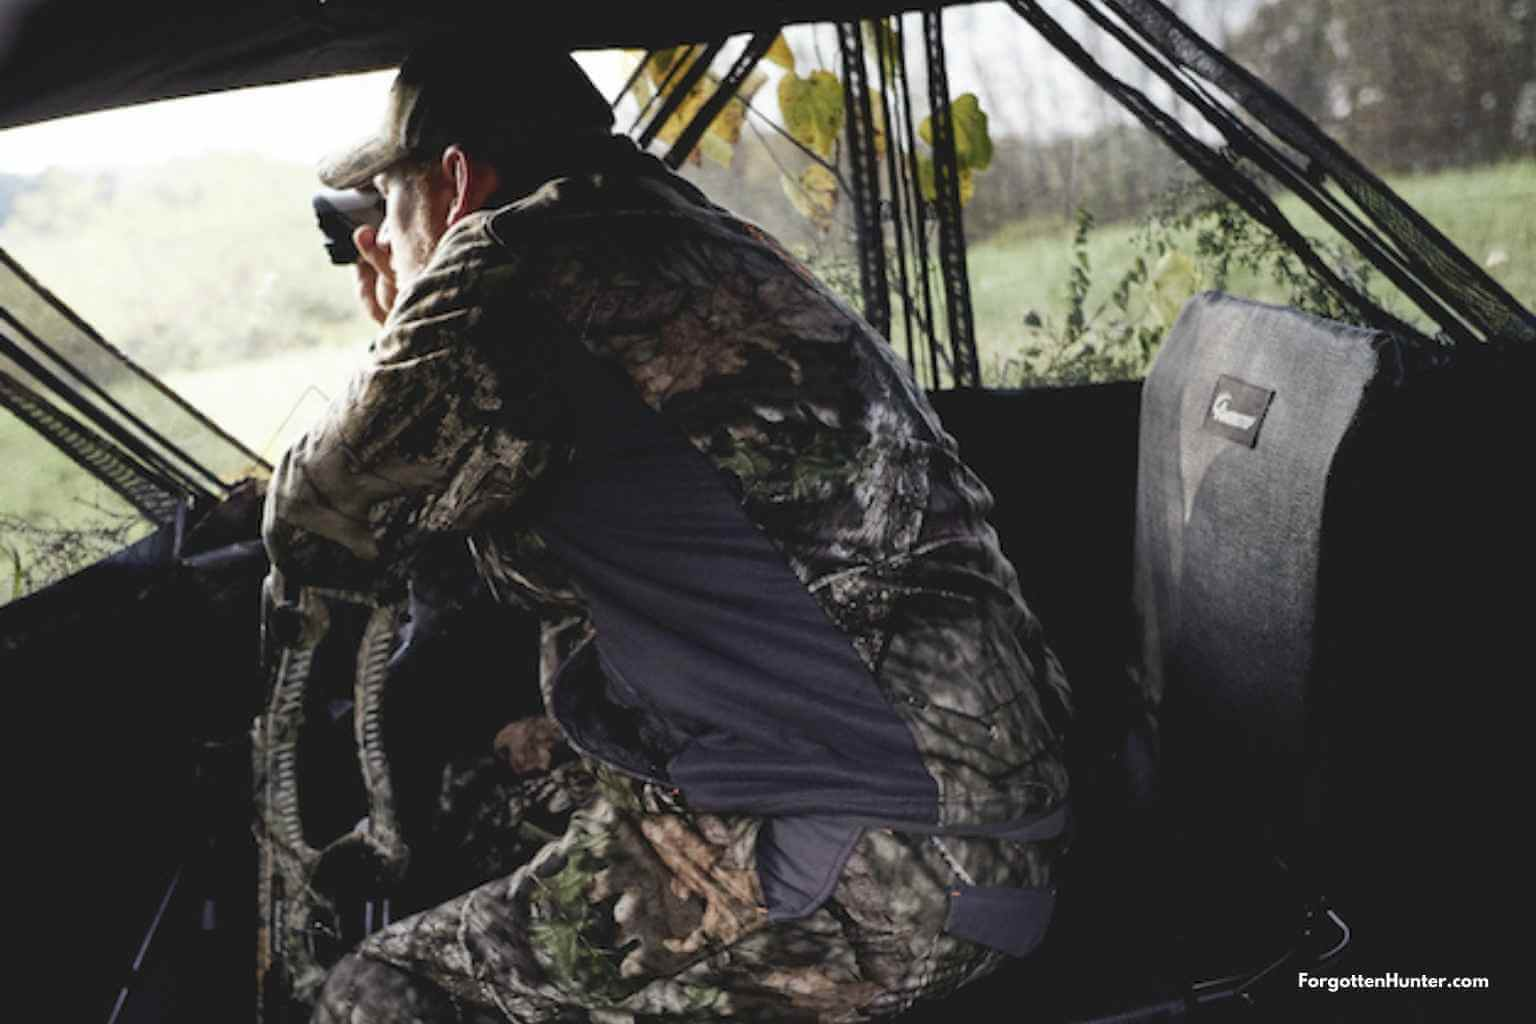 Best Hunting Chairs for Blinds and Spot and Stalk in 2021 - Reviews and Buyer's Guide